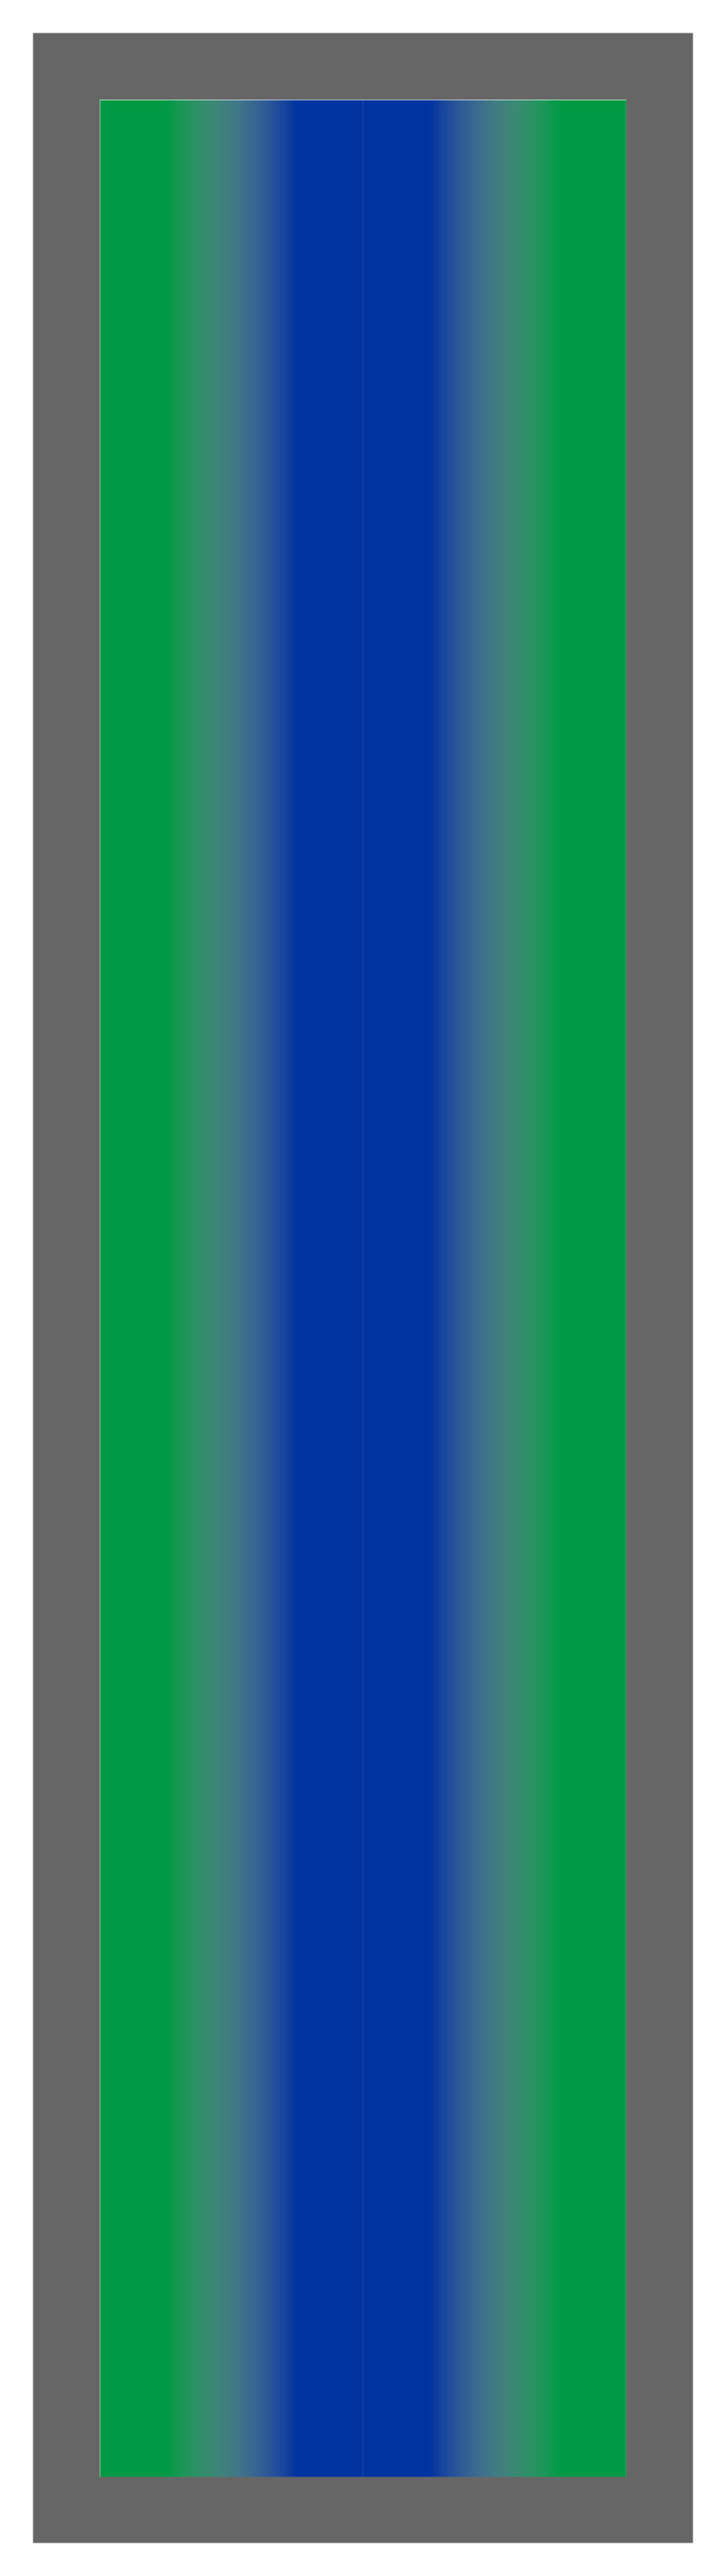 Emerald Green-Royal Blue-Emerald Green Ombre Stripe